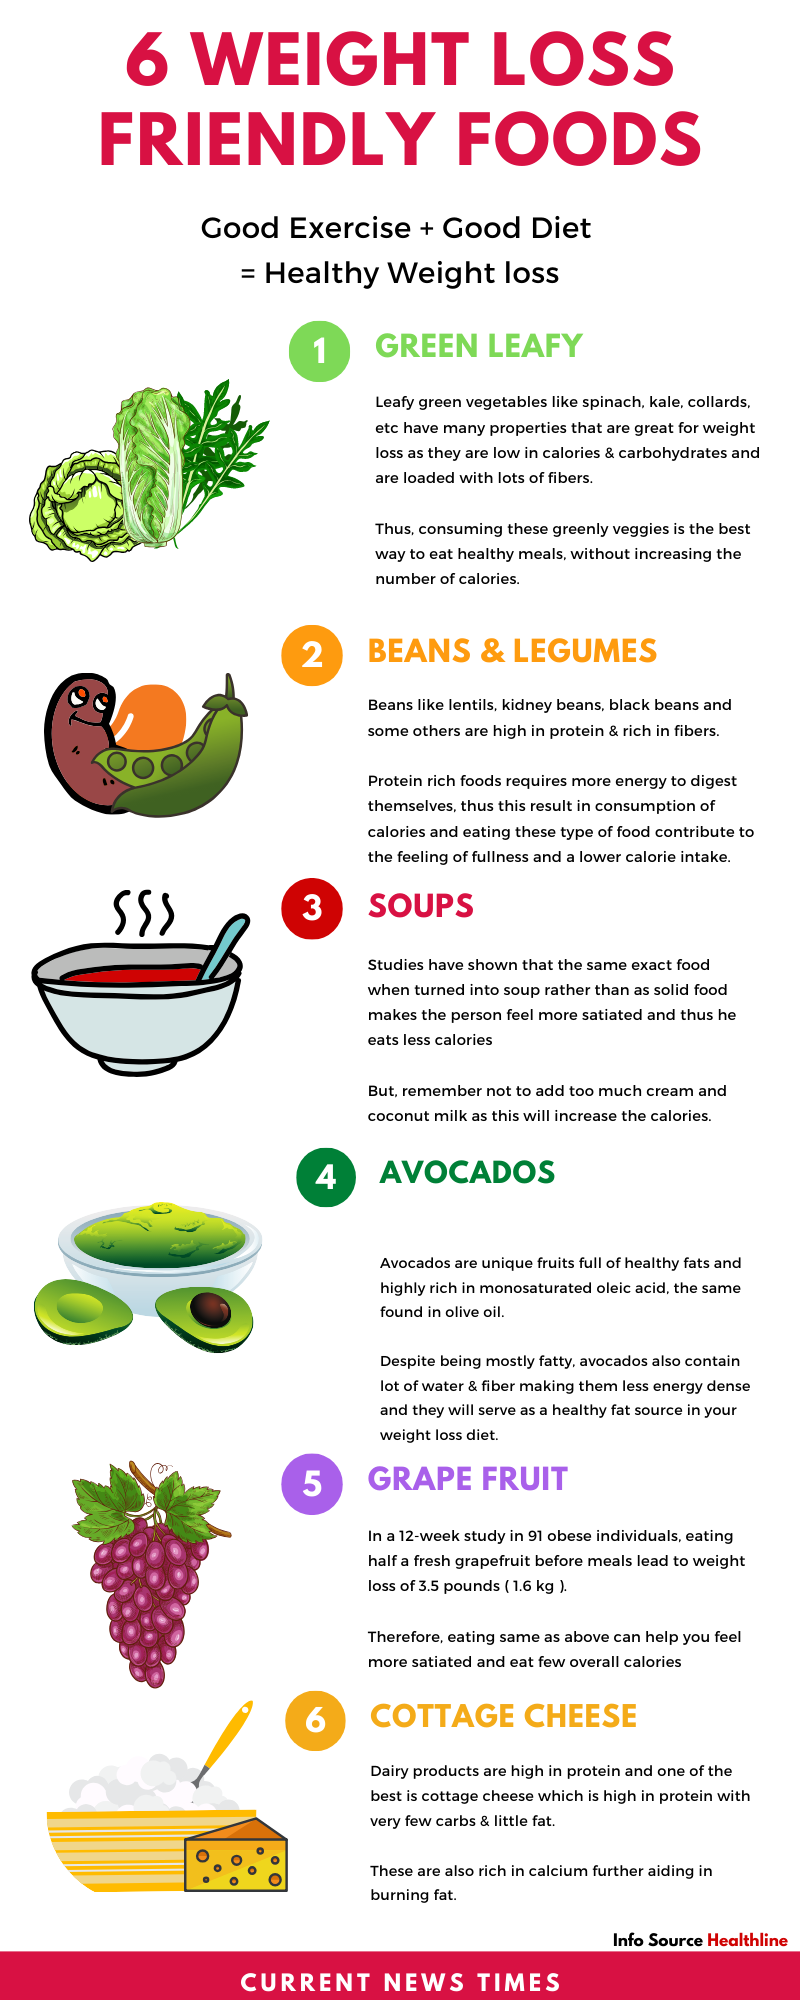 6-Weight-loss-friendly-foods-infographic